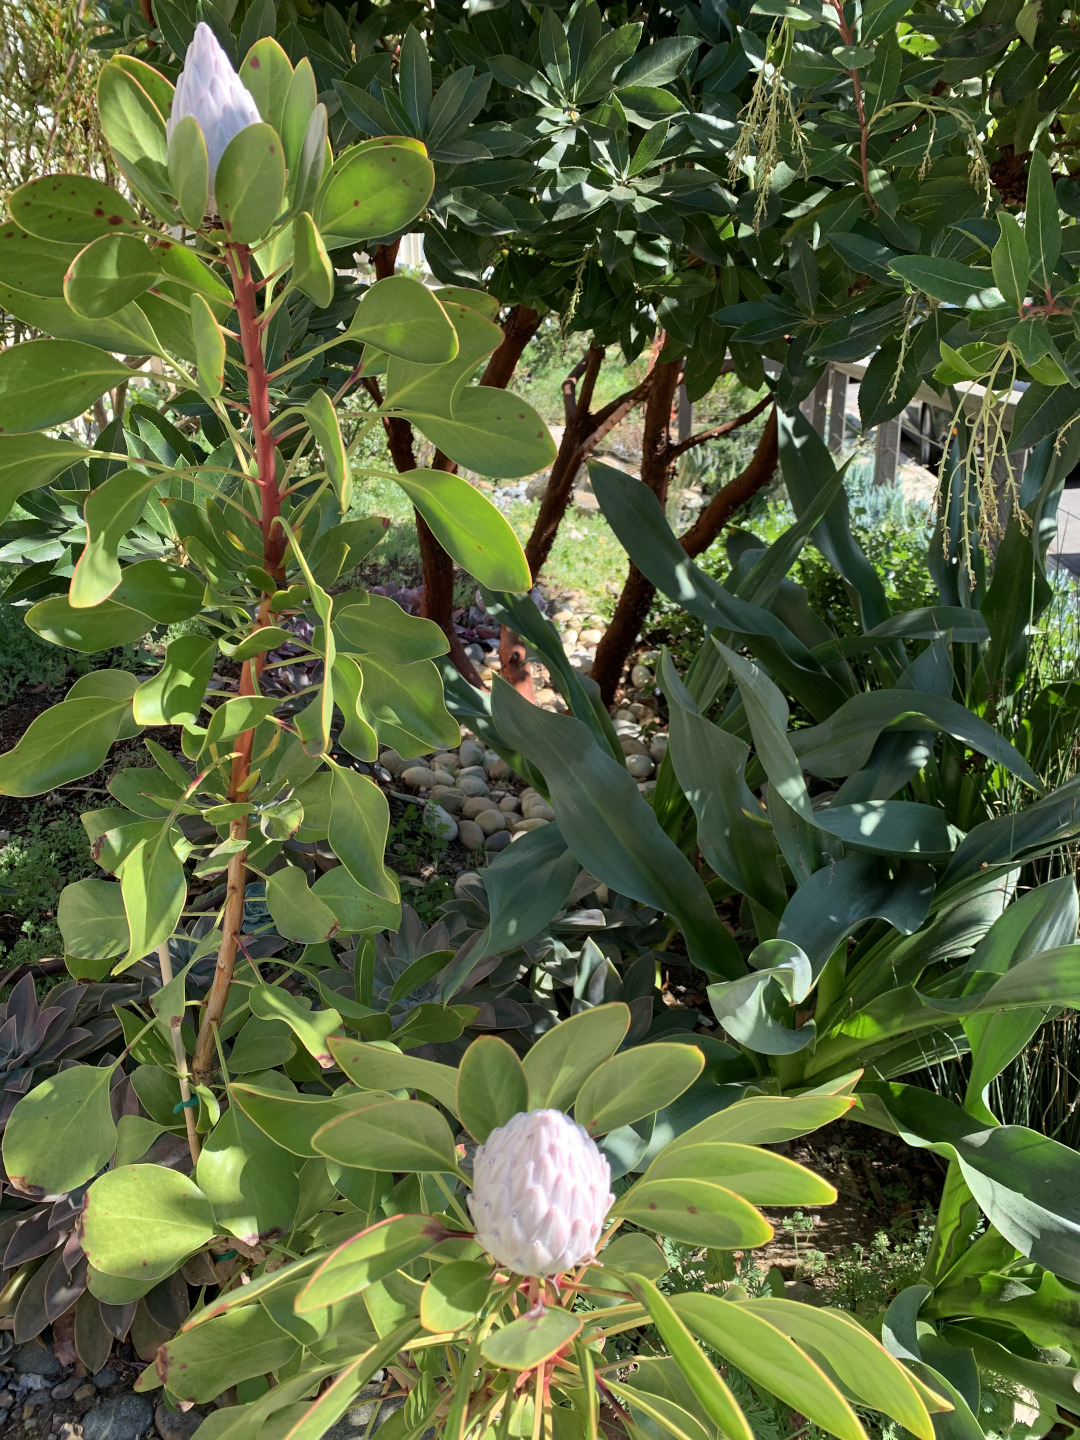 king protea flower buds